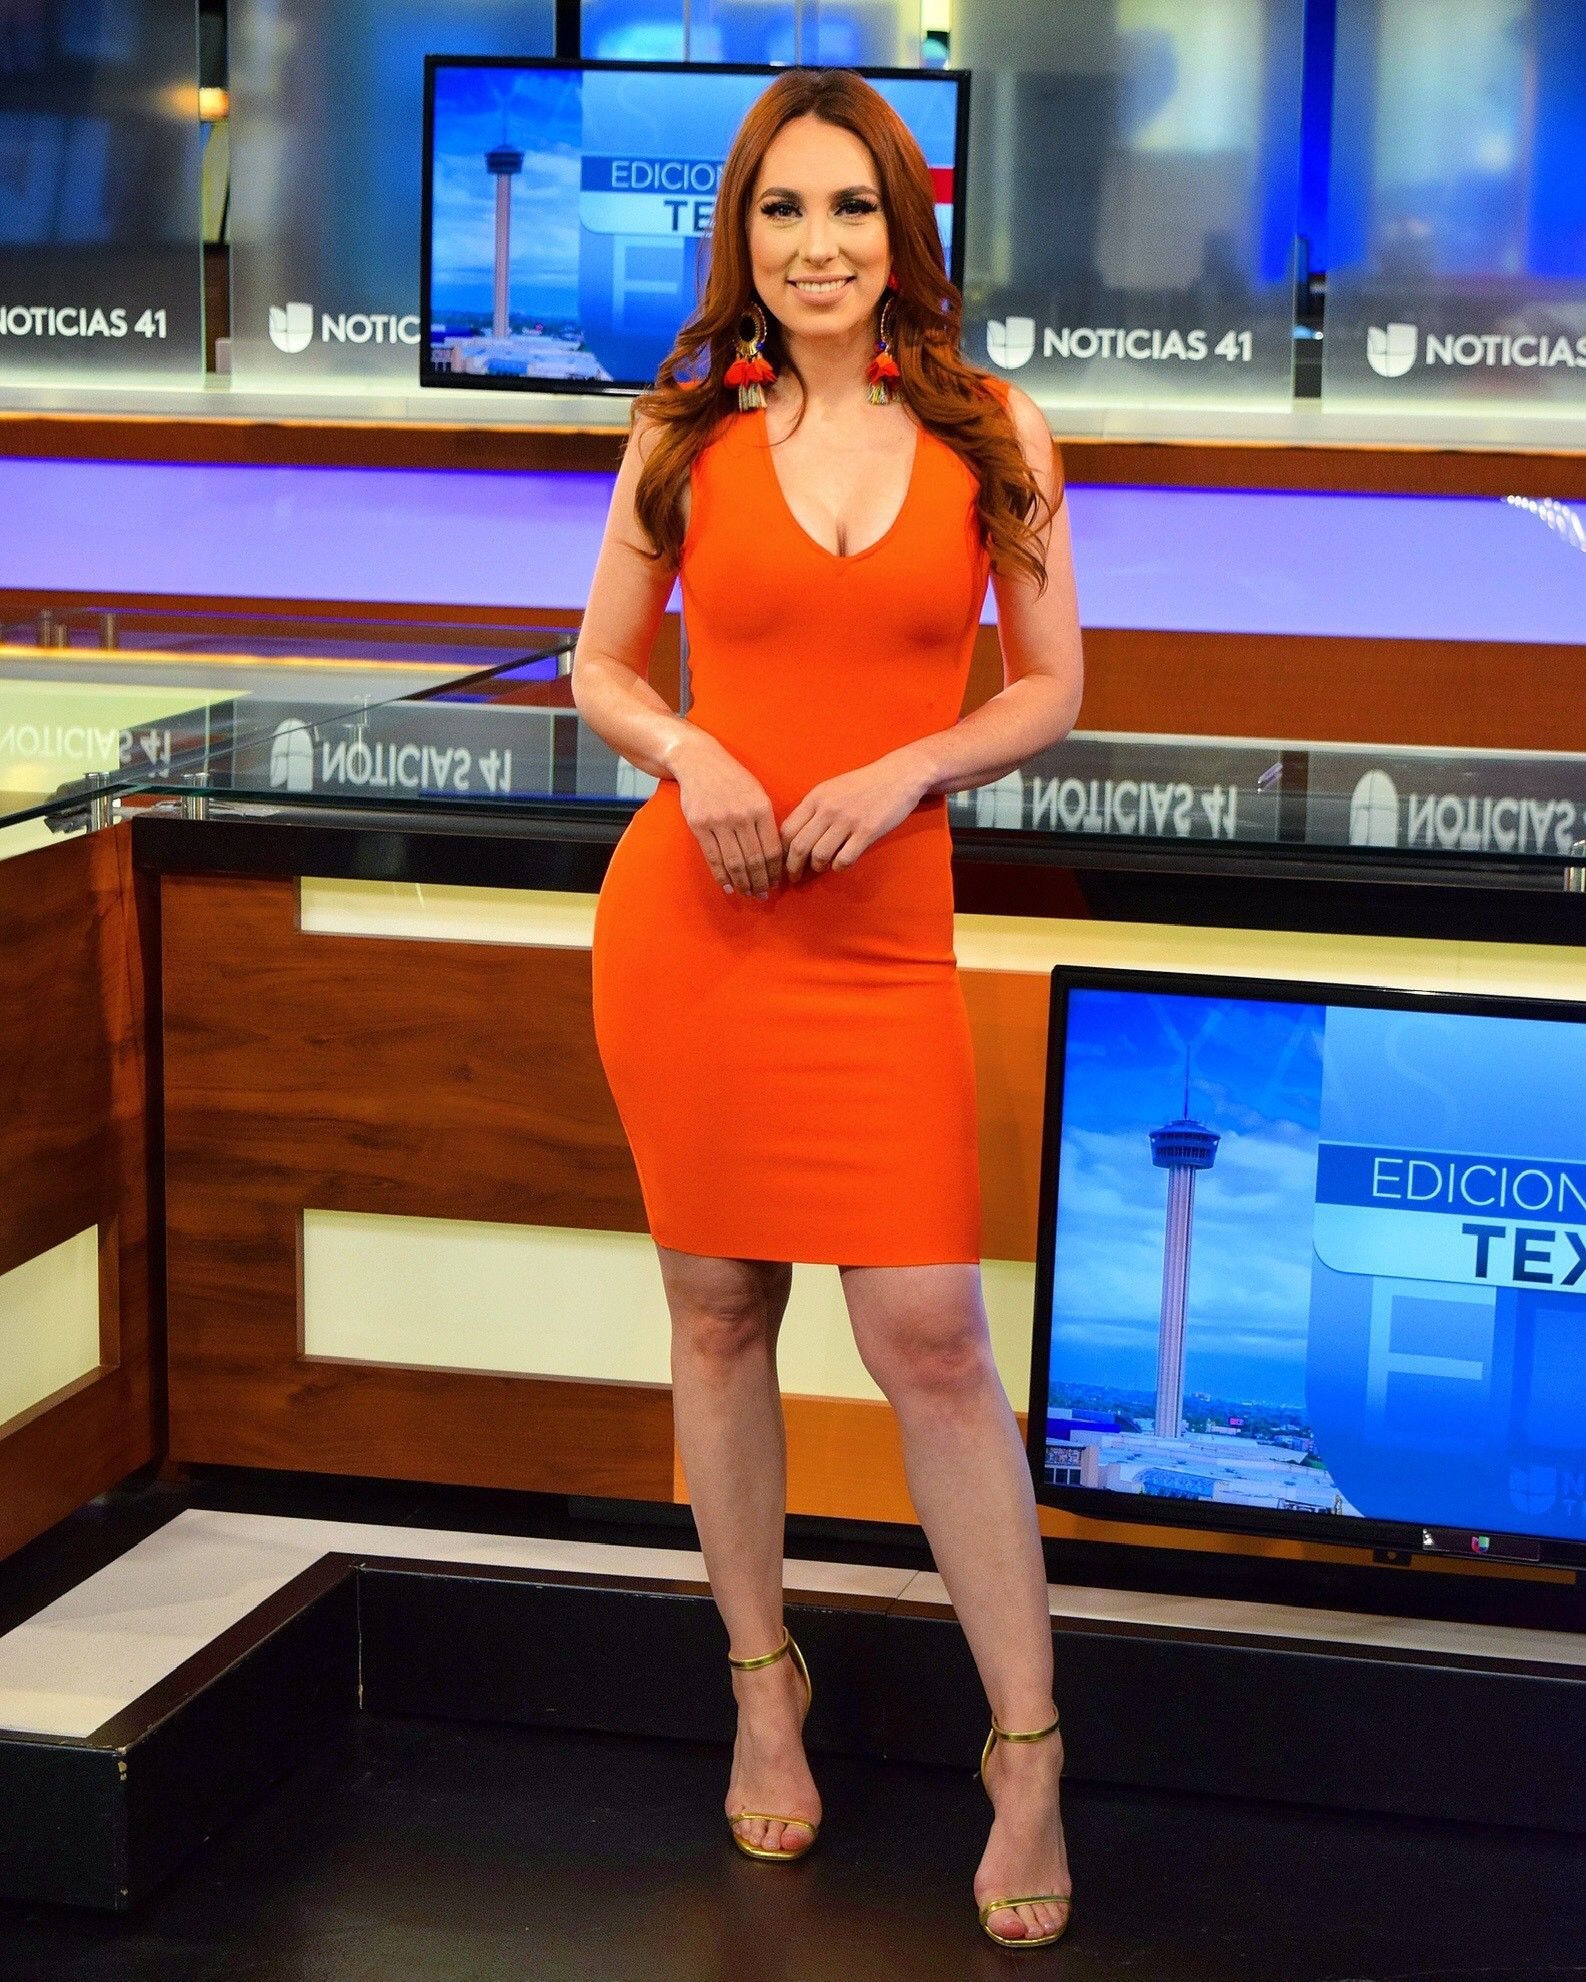 San Antonio Univision weather anchor leaves TV for career as